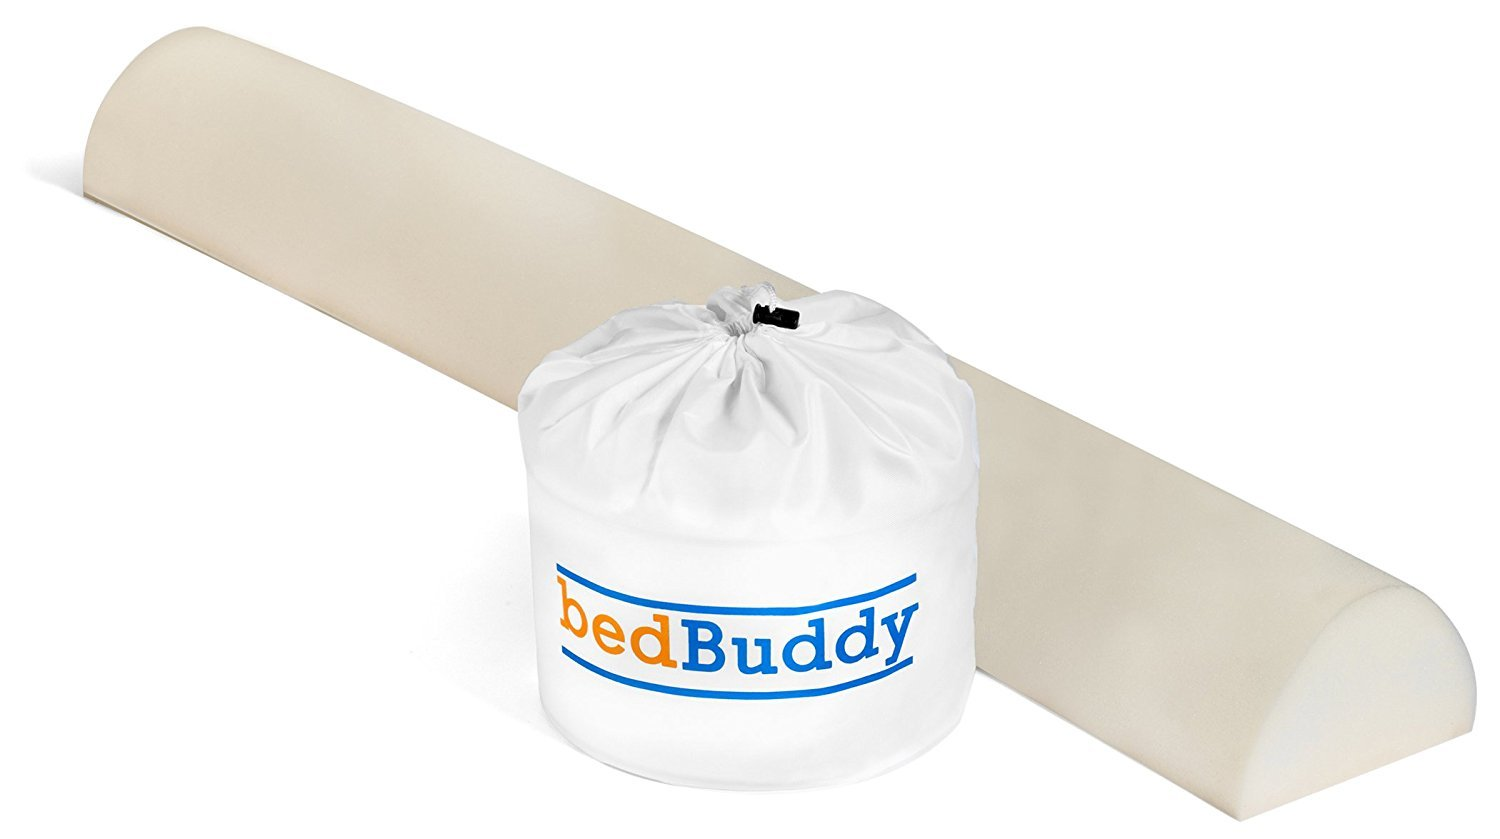 Bed Buddy Bed Rail Guard - for Toddlers, Kids and Adults Easy Install Plus Easy Carry Travel Bag. Kids Stay Put Using this Safety-Certified Foam Bed Side Bumper Mattress Pad Kensington Street